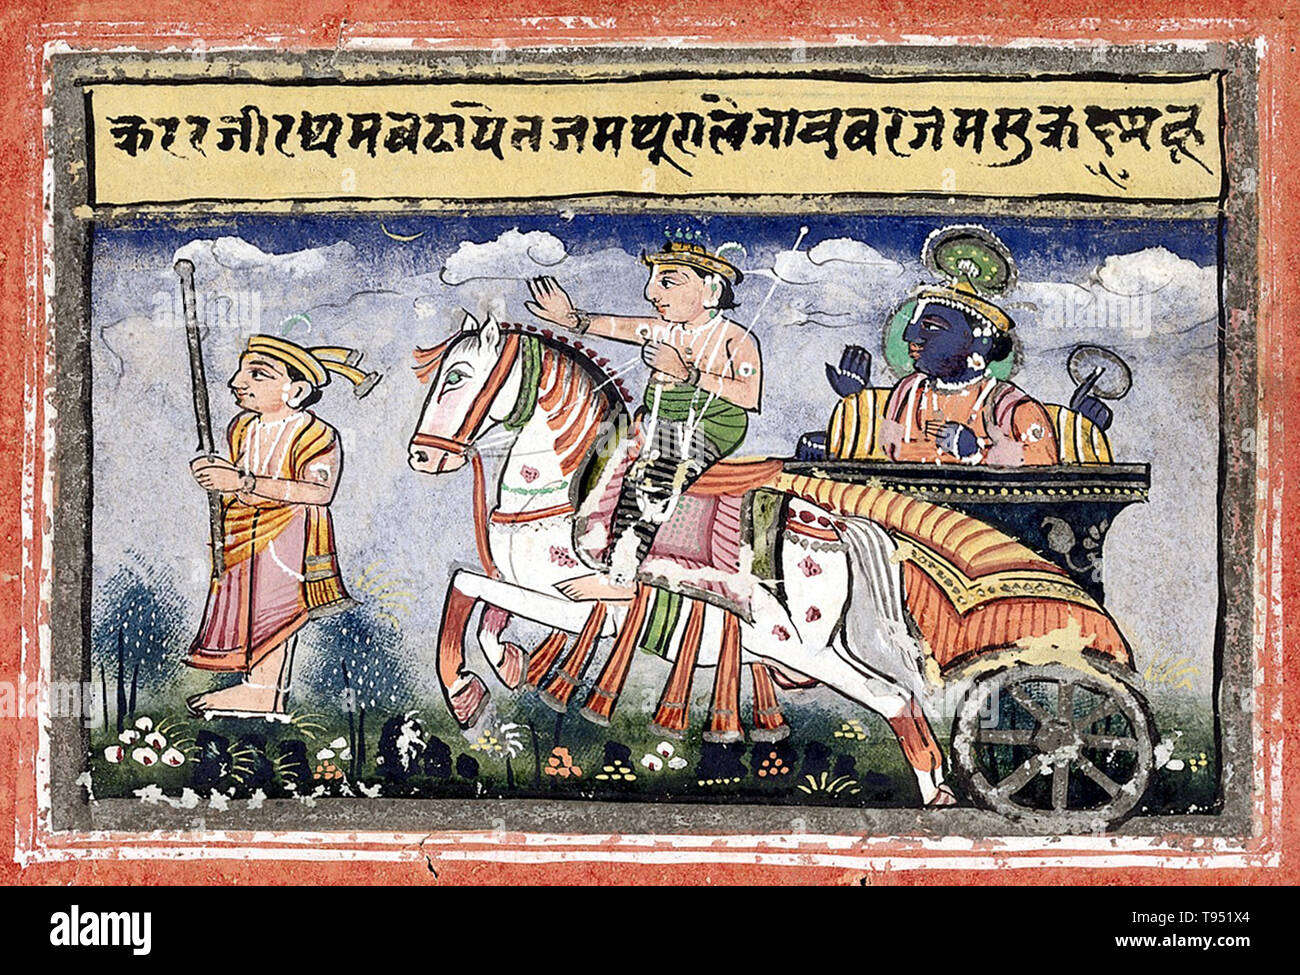 Krishna riding in a chariot going to Mathura. Krishna is the god of compassion, tenderness, and love in Hinduism. He is one of the most widely revered and popular Indian divinities, worshipped as the eighth incarnation of the Hindu god Vishnu and also as the supreme God in his own right. Krishna's birthday is celebrated every year by Hindus on Janmashtami according to the lunisolar Hindu calendar, which falls in late August or early September. Krishna is also known by numerous names, such as Govinda, Mukunda, Madhusudhana, Vasudeva, and Makhan chor in affection. The anecdotes and narratives of - Stock Image